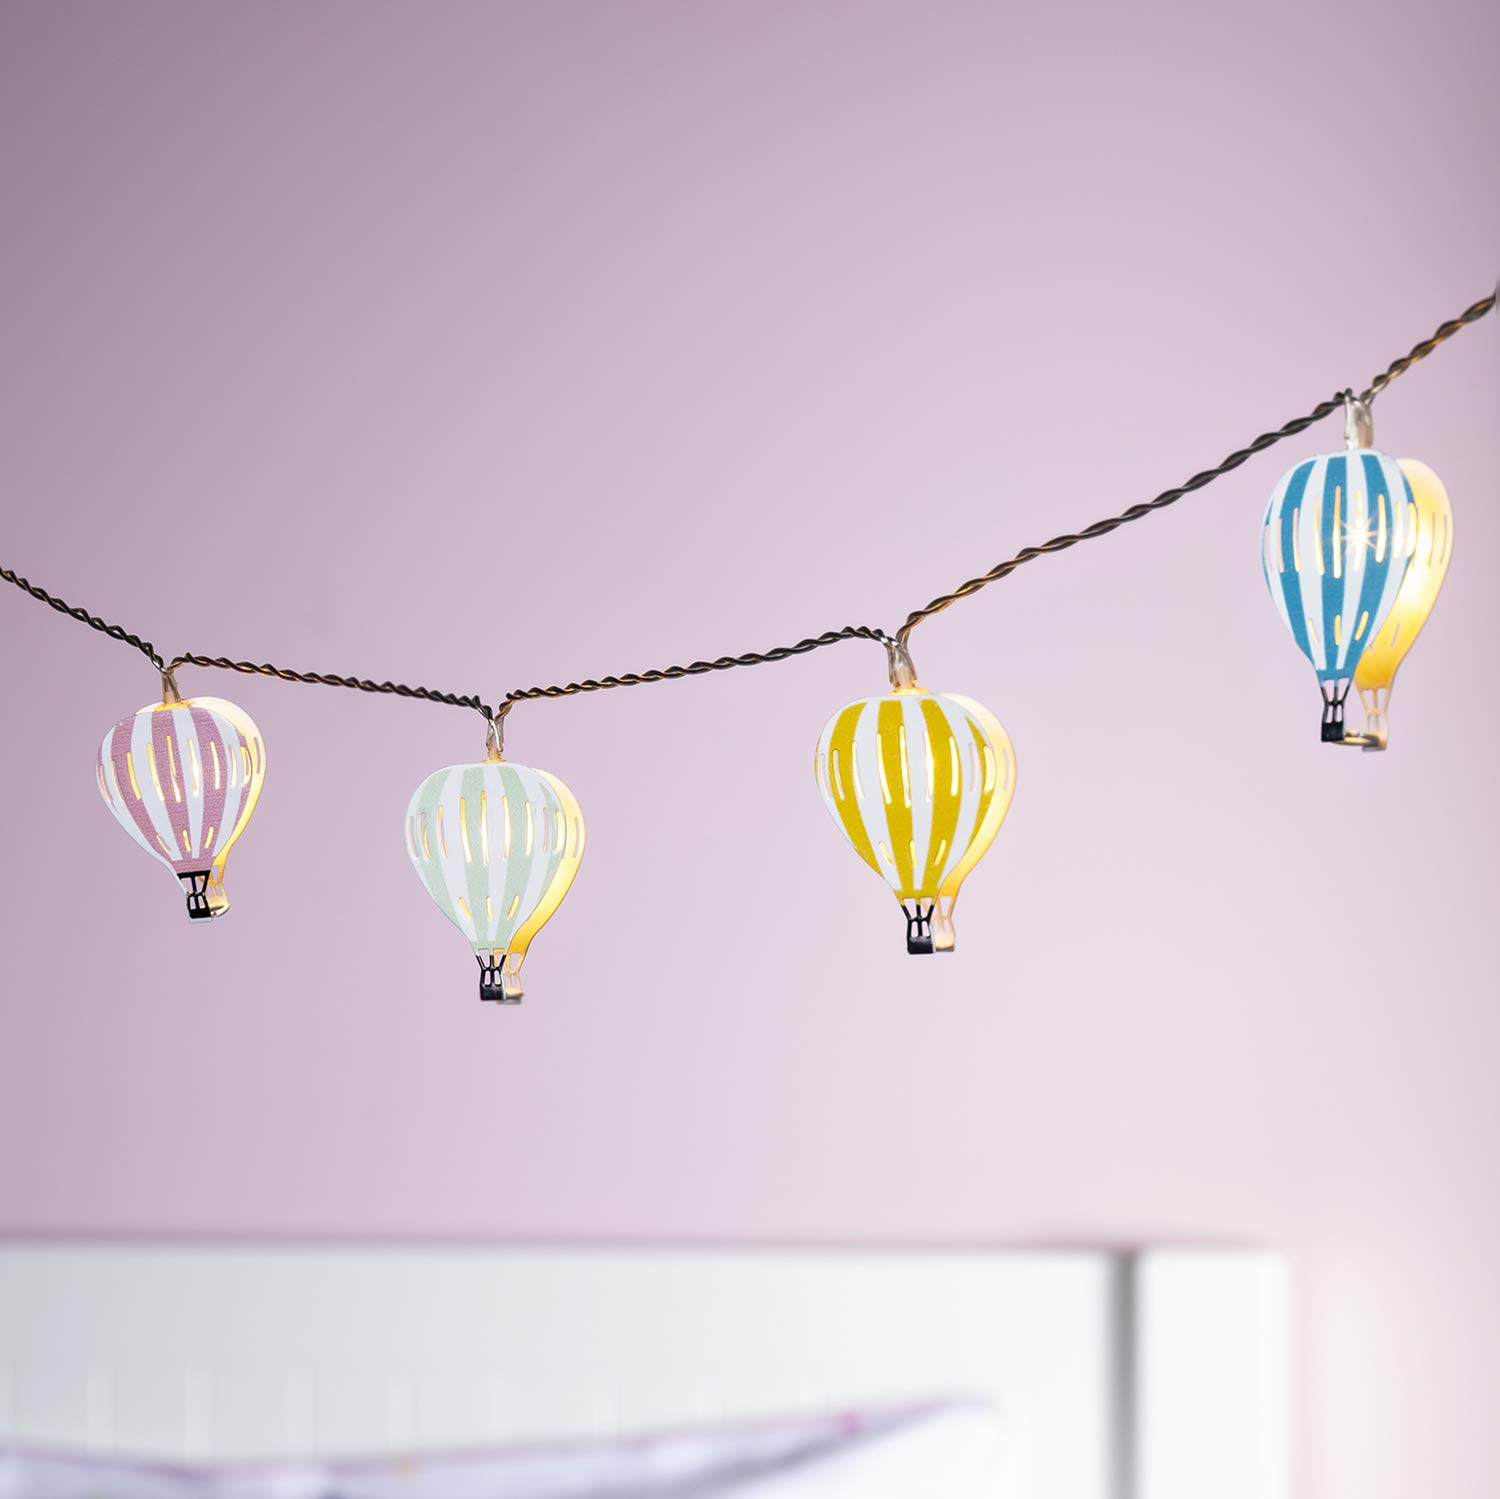 Lights4fun, Inc. 12 Hot Air Balloon Battery Operated LED Bedroom String Lights